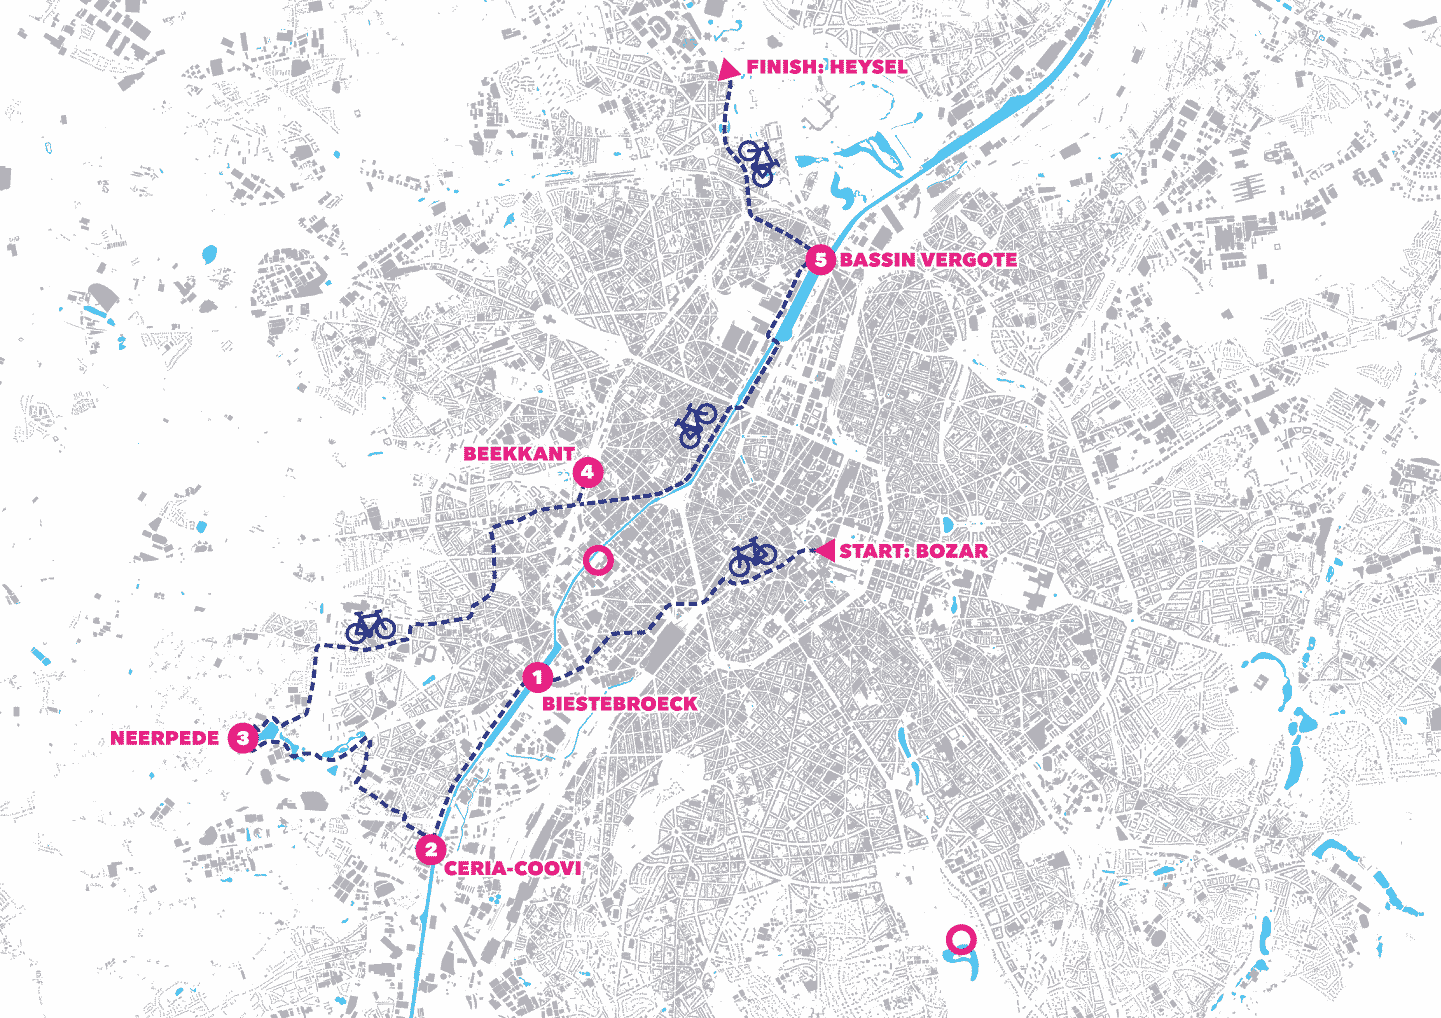 The route of the cycling tour,22 km in 4 hours.